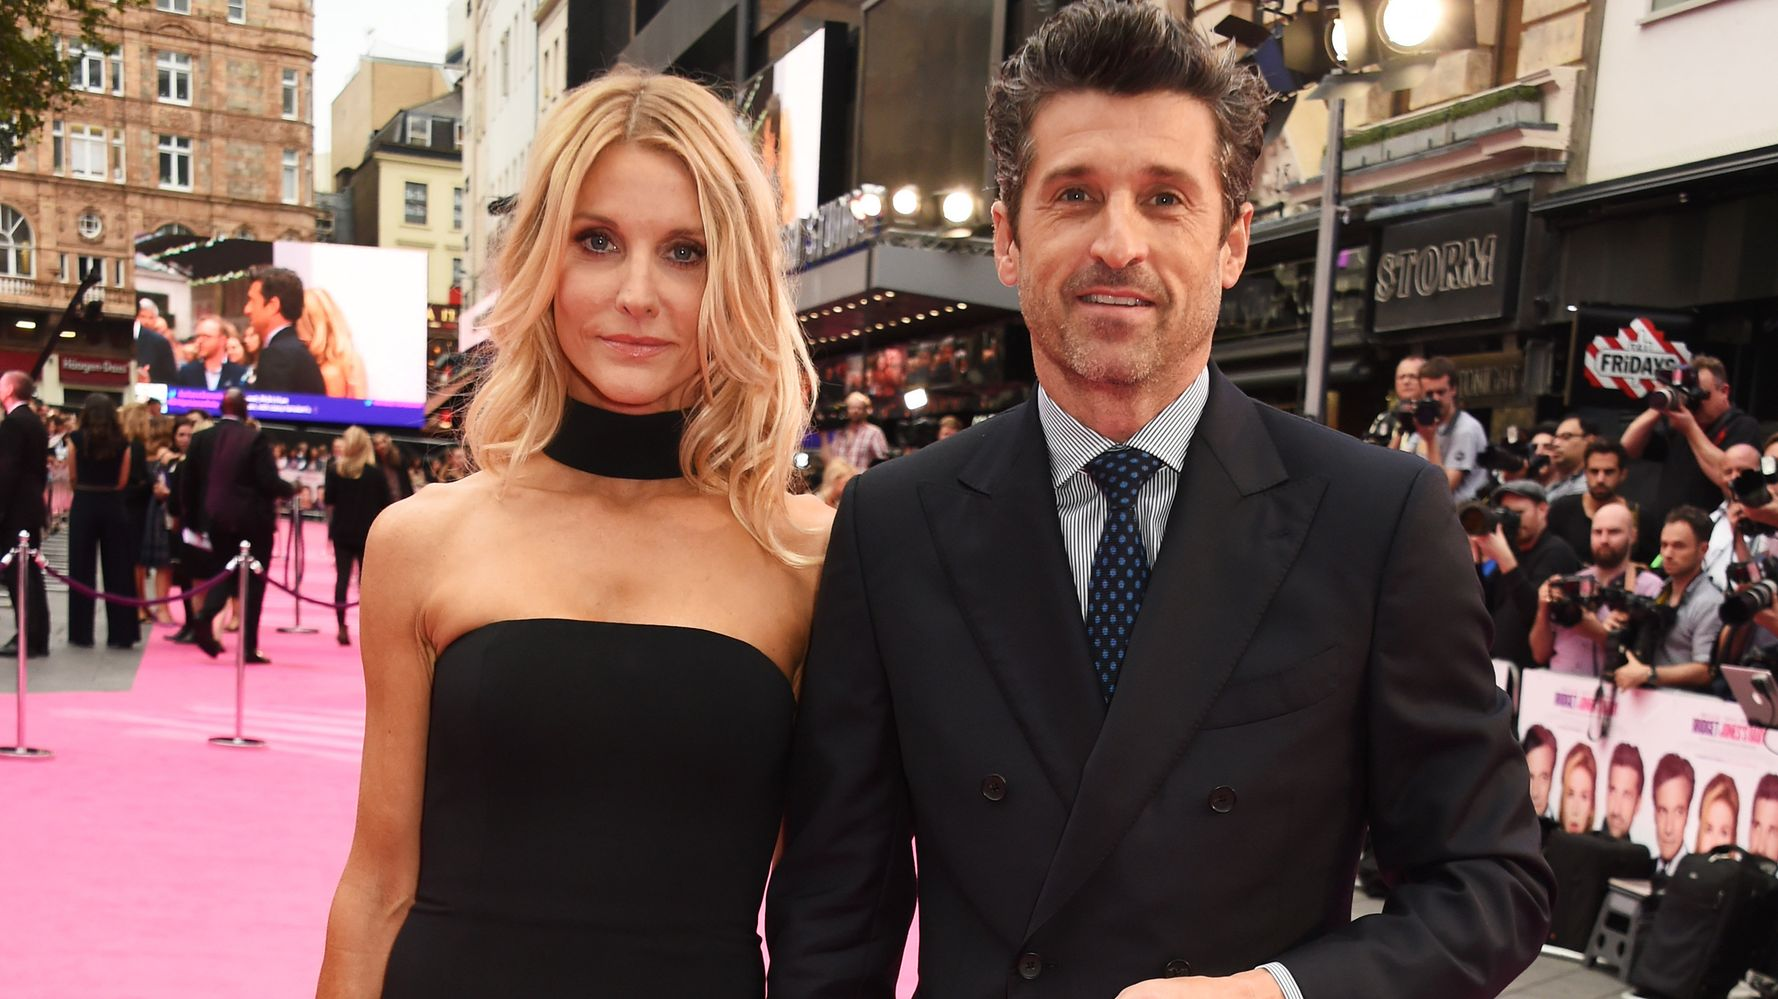 Patrick Dempsey On Why He And Jillian Fink Called Off Their Divorce